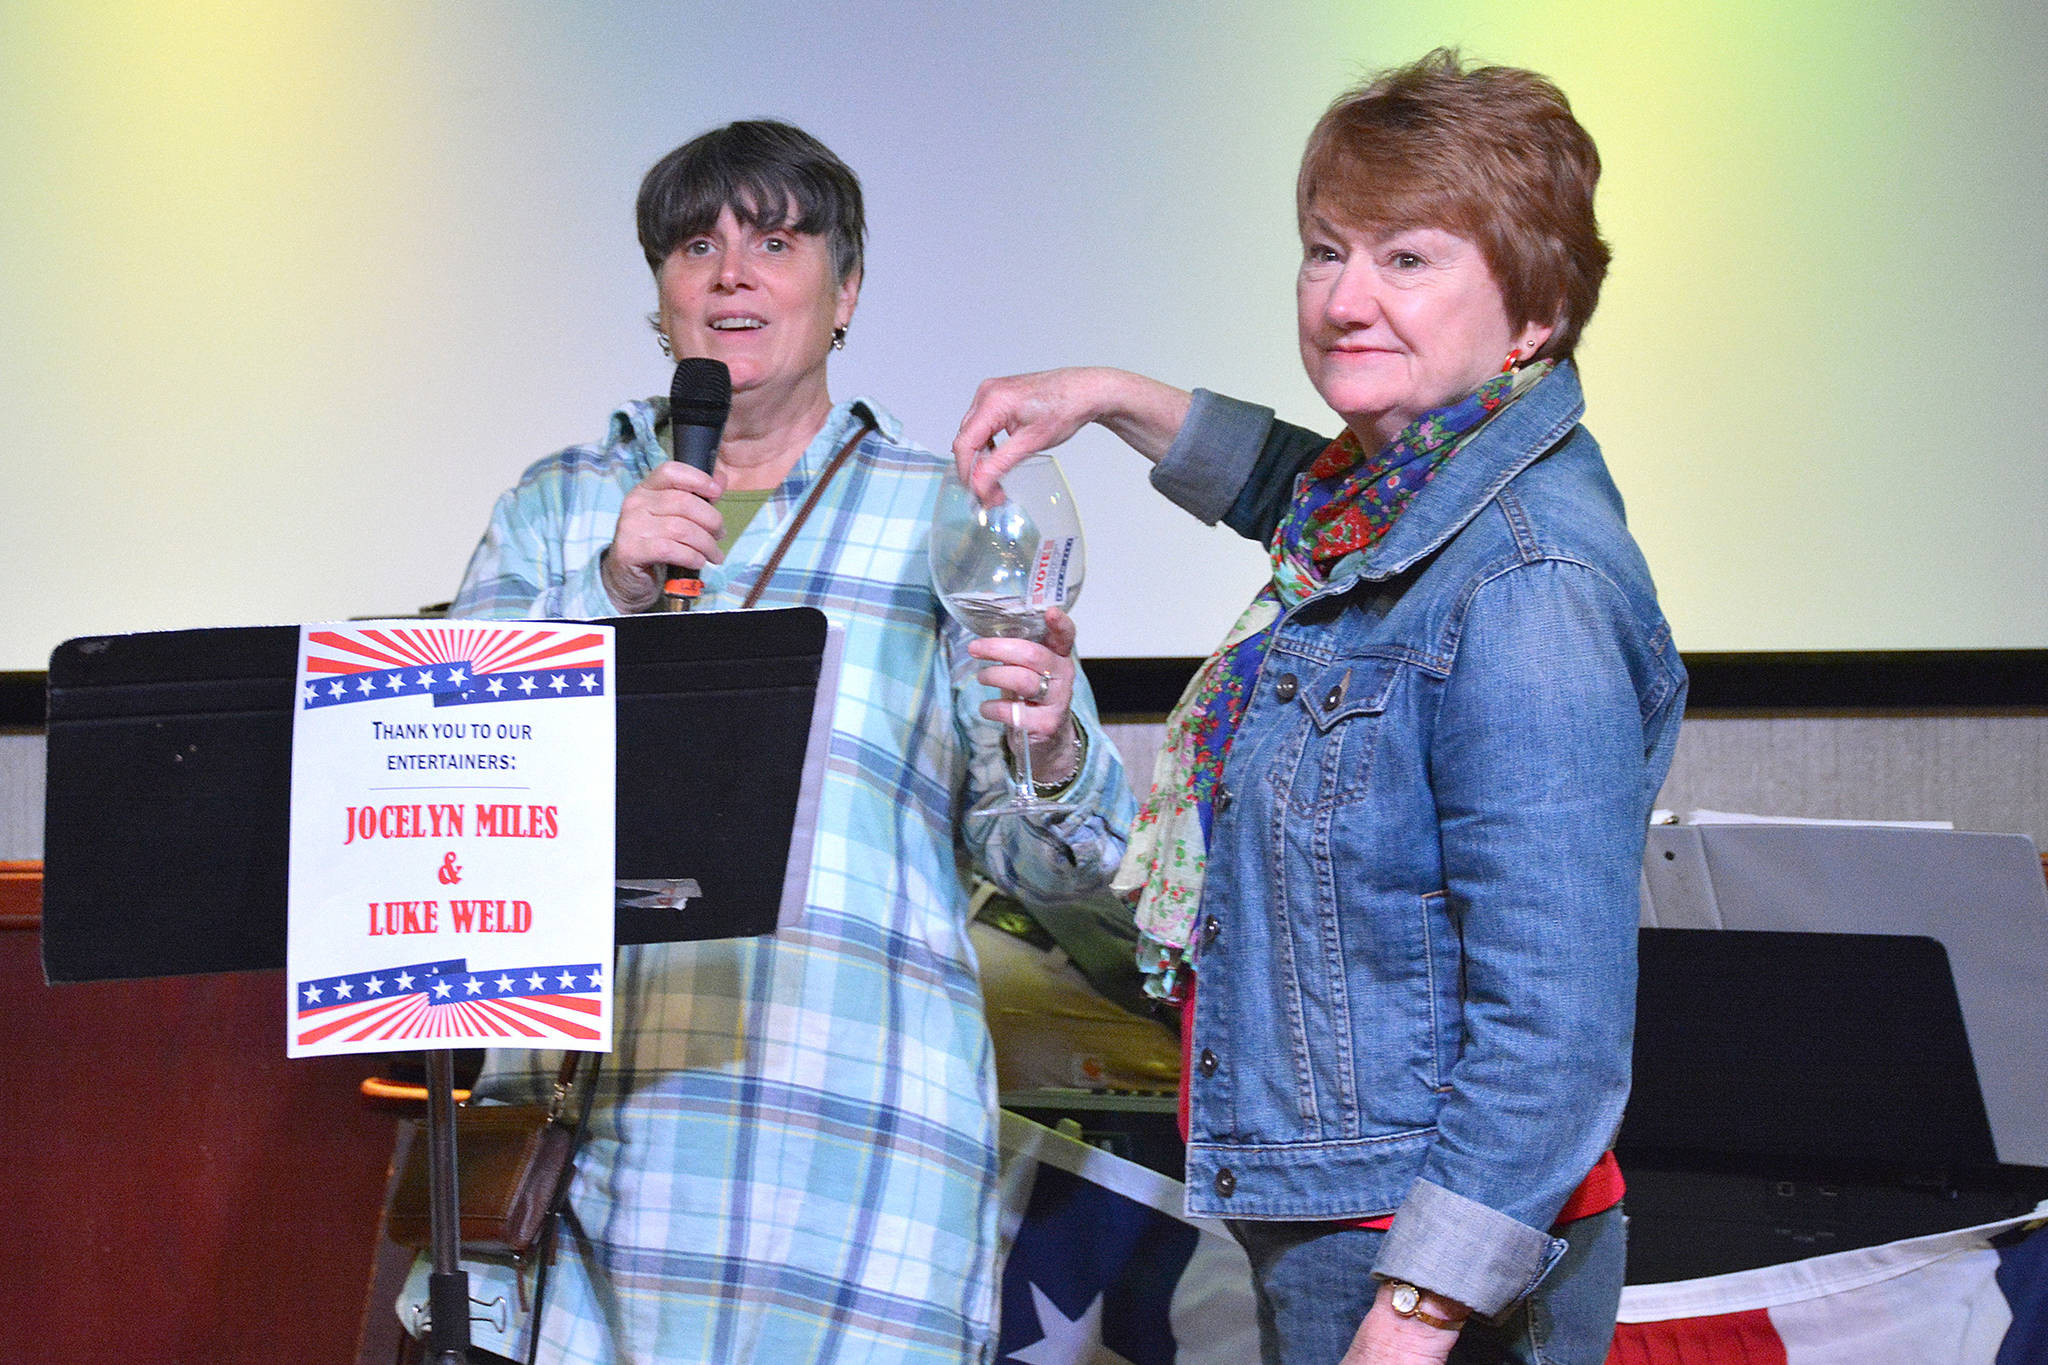 League of Women Voters of Juneau Director Judith Mitchell and Vice President Marianne Mills draw a door prize during the League's fourth annual Wine Tasting and Silent Auction Fundraiser on Oct. 5, 2018, at the Hangar Ballroom. (Courtesy Photo | Kim Andree Jones)